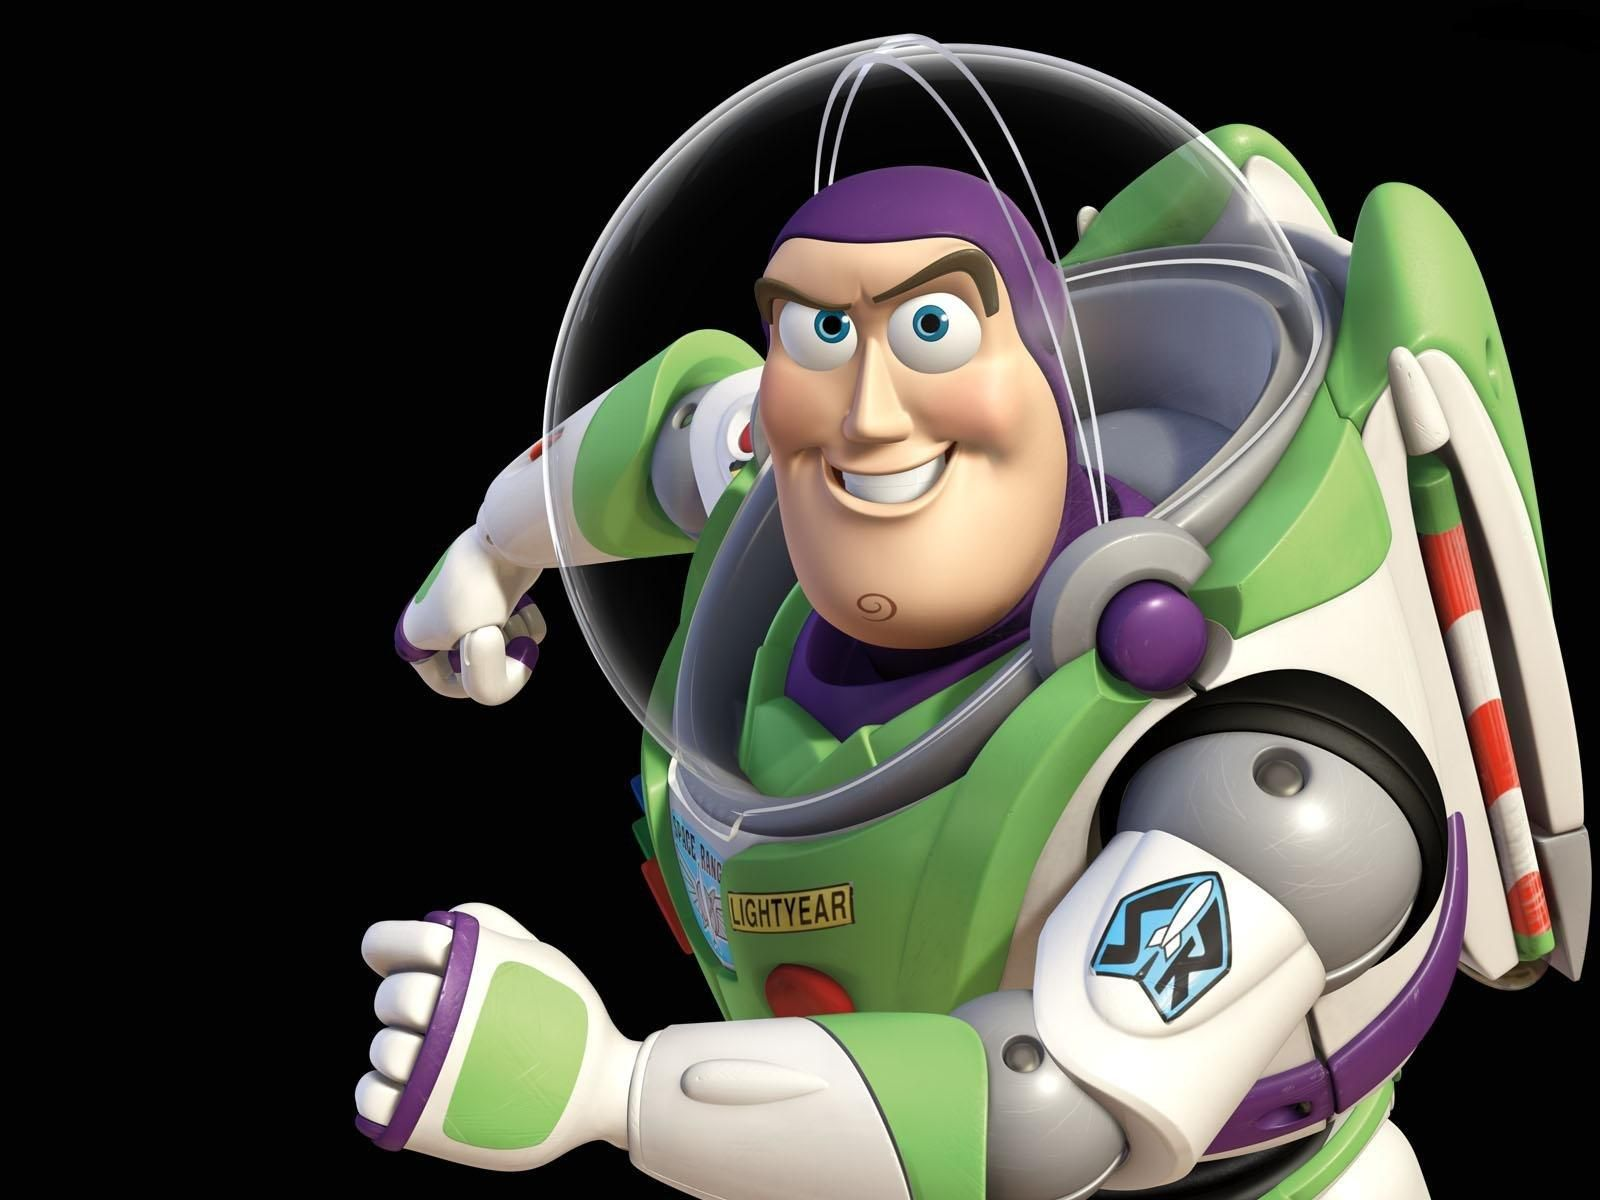 Buzz Lightyear Sideview Pose Wallpaper 1600x1200